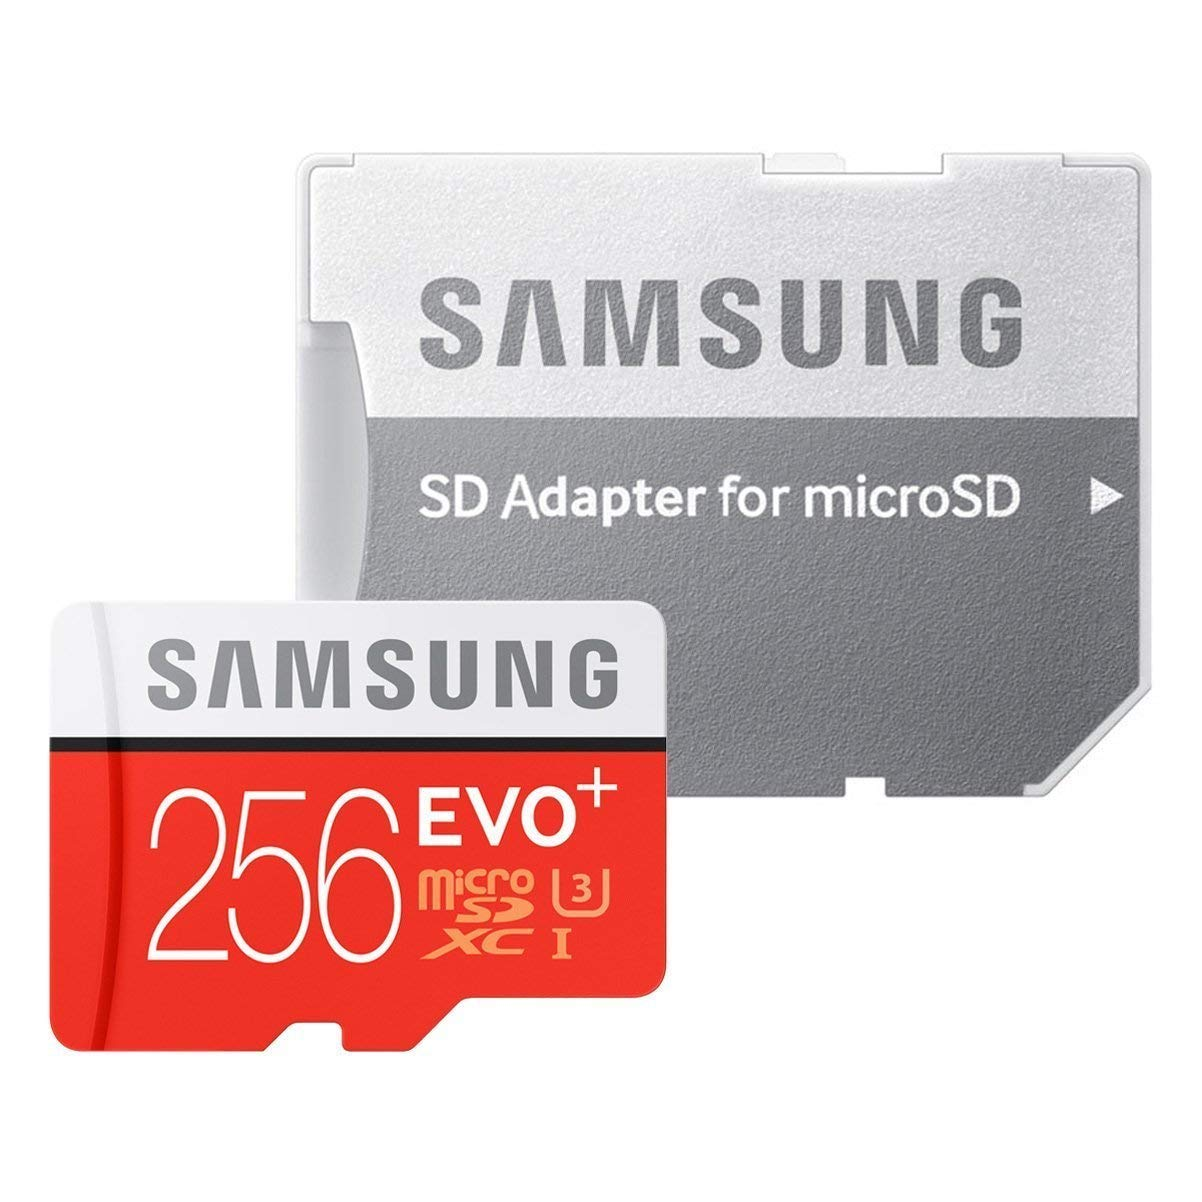 Amazon.com: Samsung EVO+ MB-MC256DA/AM tarjeta de memoria ...